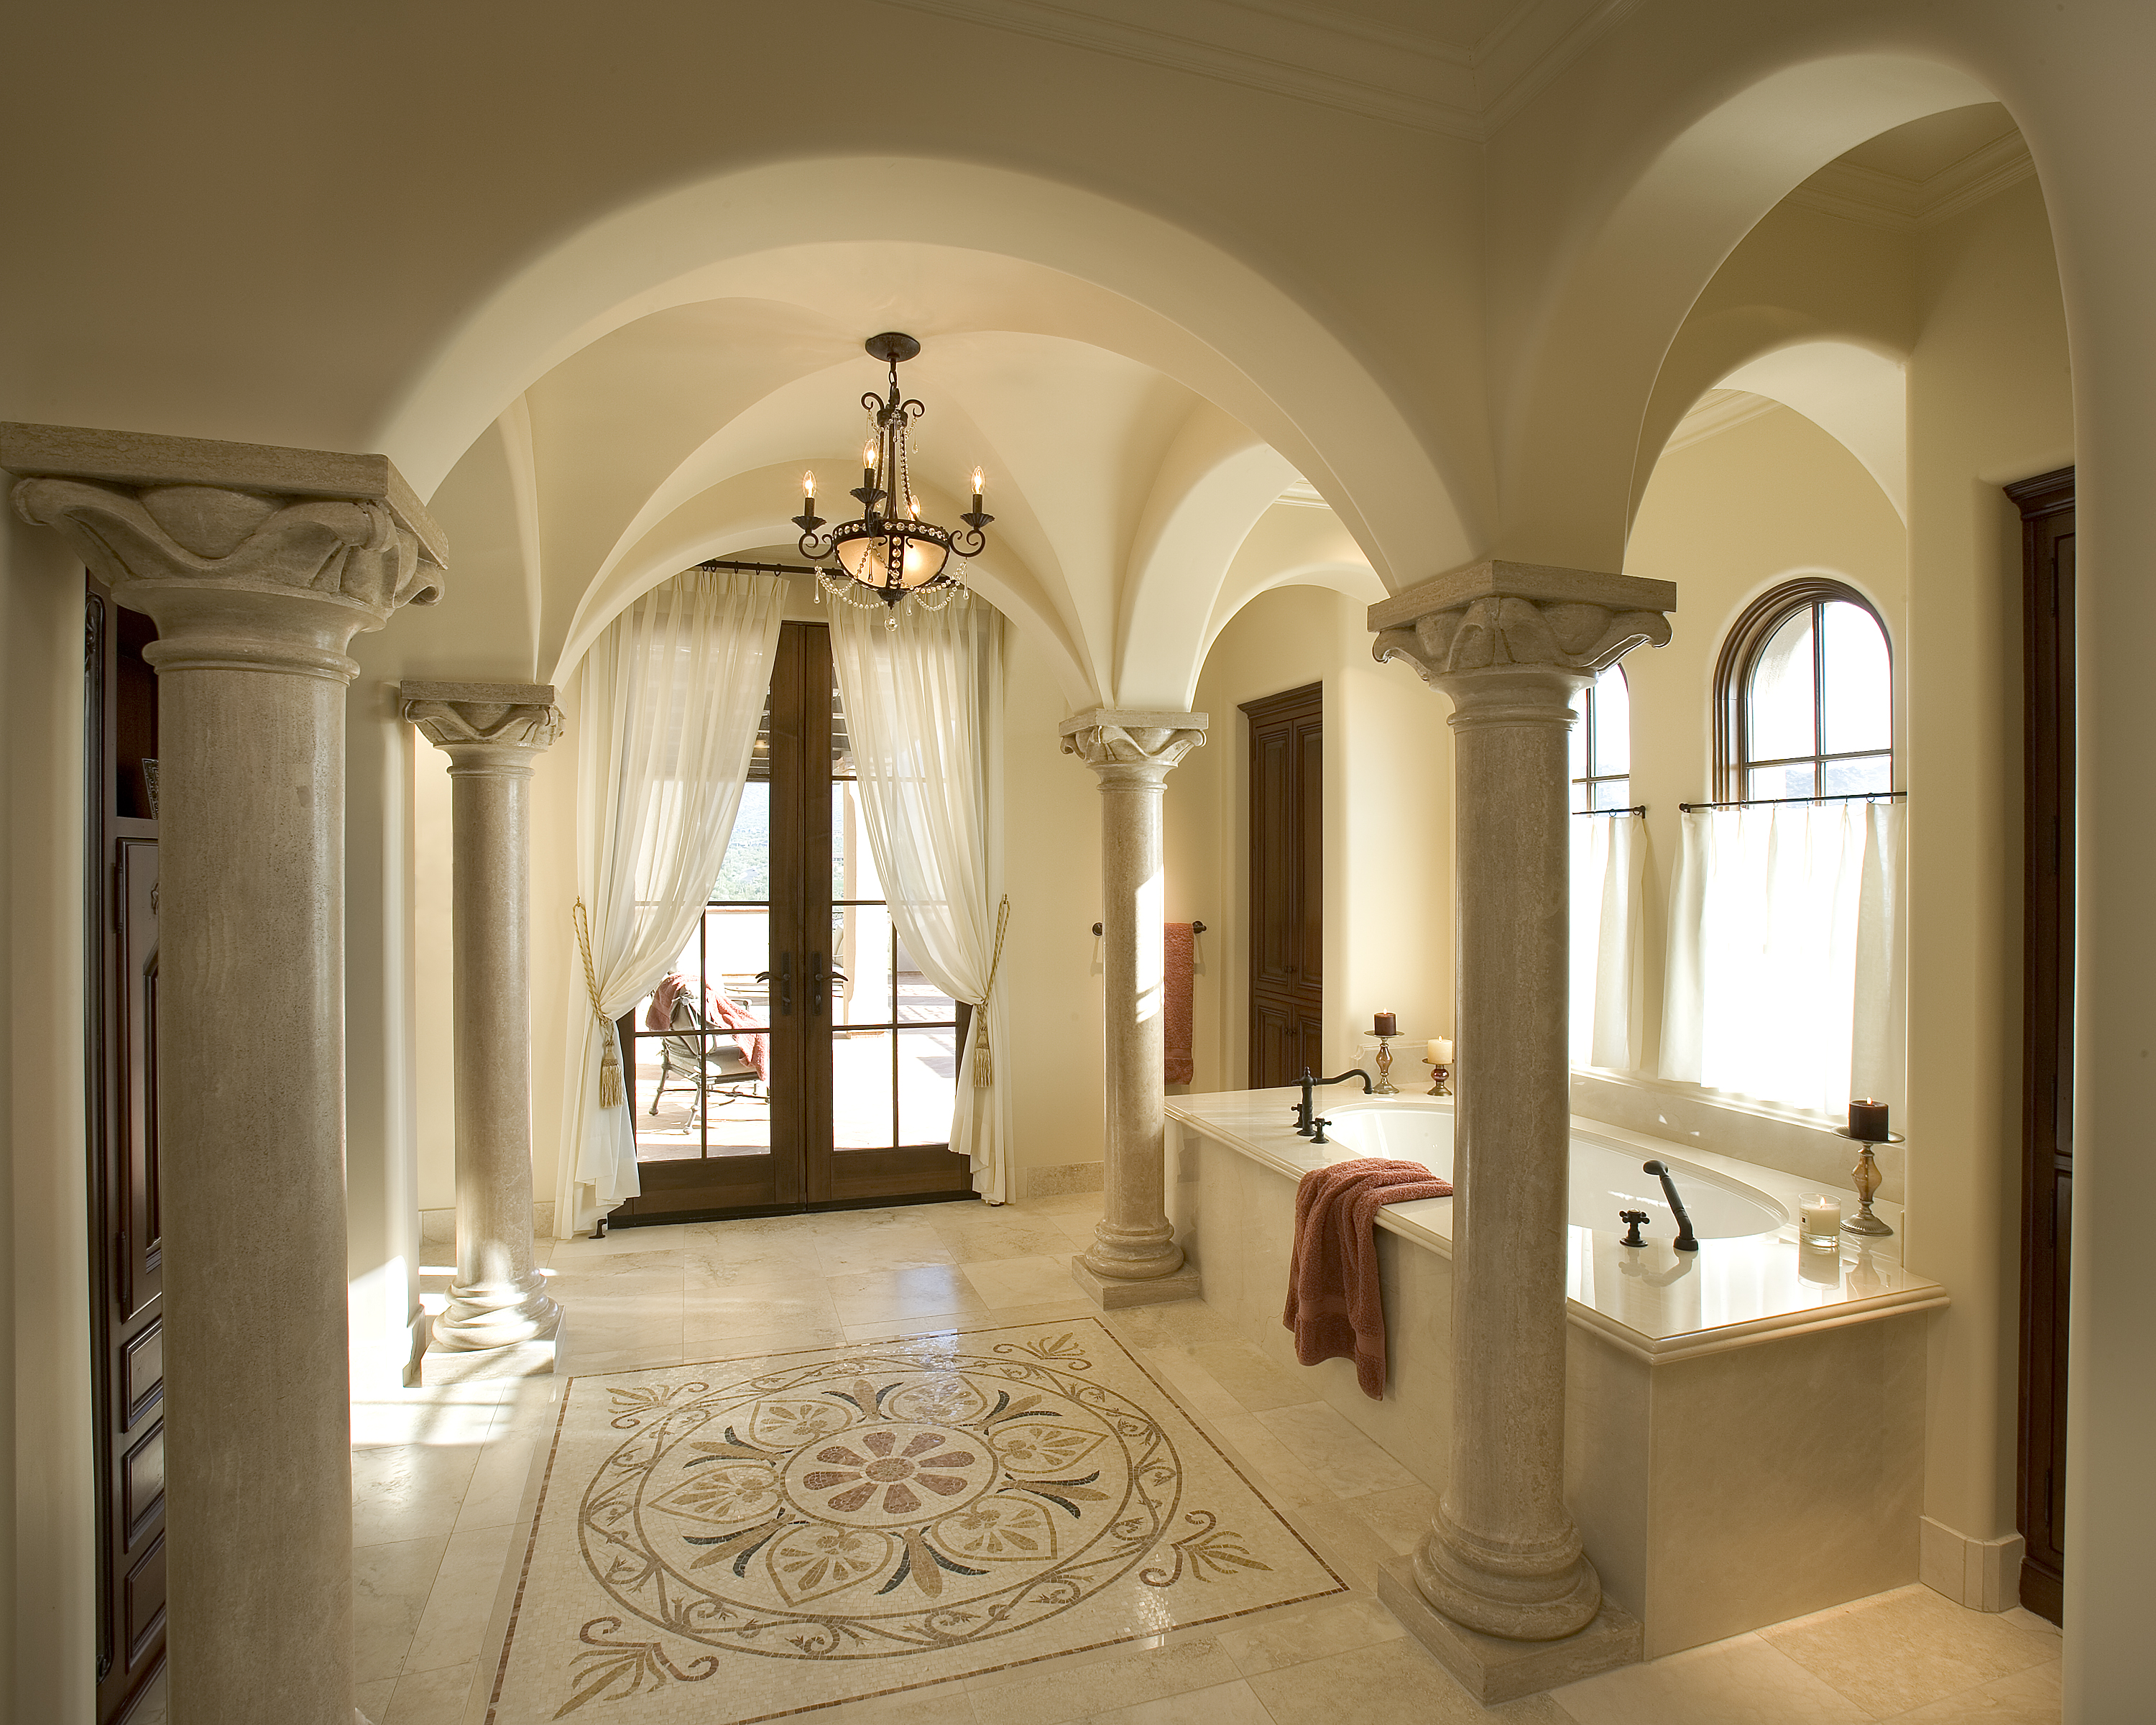 timeless architecture: formal mediterranean style - living